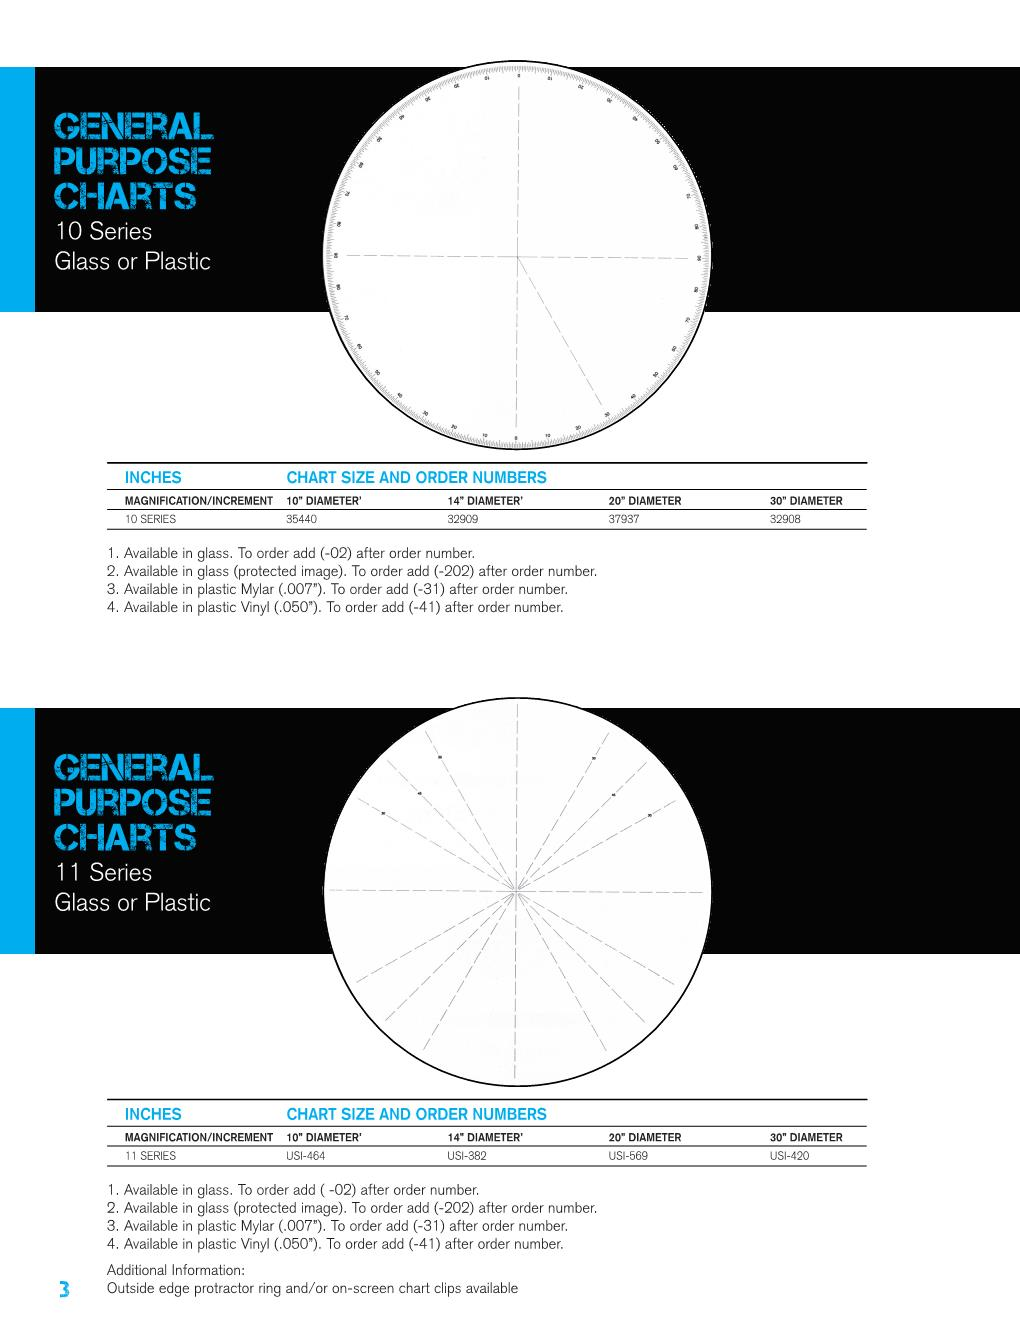 Unlimited Services Chart & Fixture Catalog 12.2018 FINAL Page 004.jpg